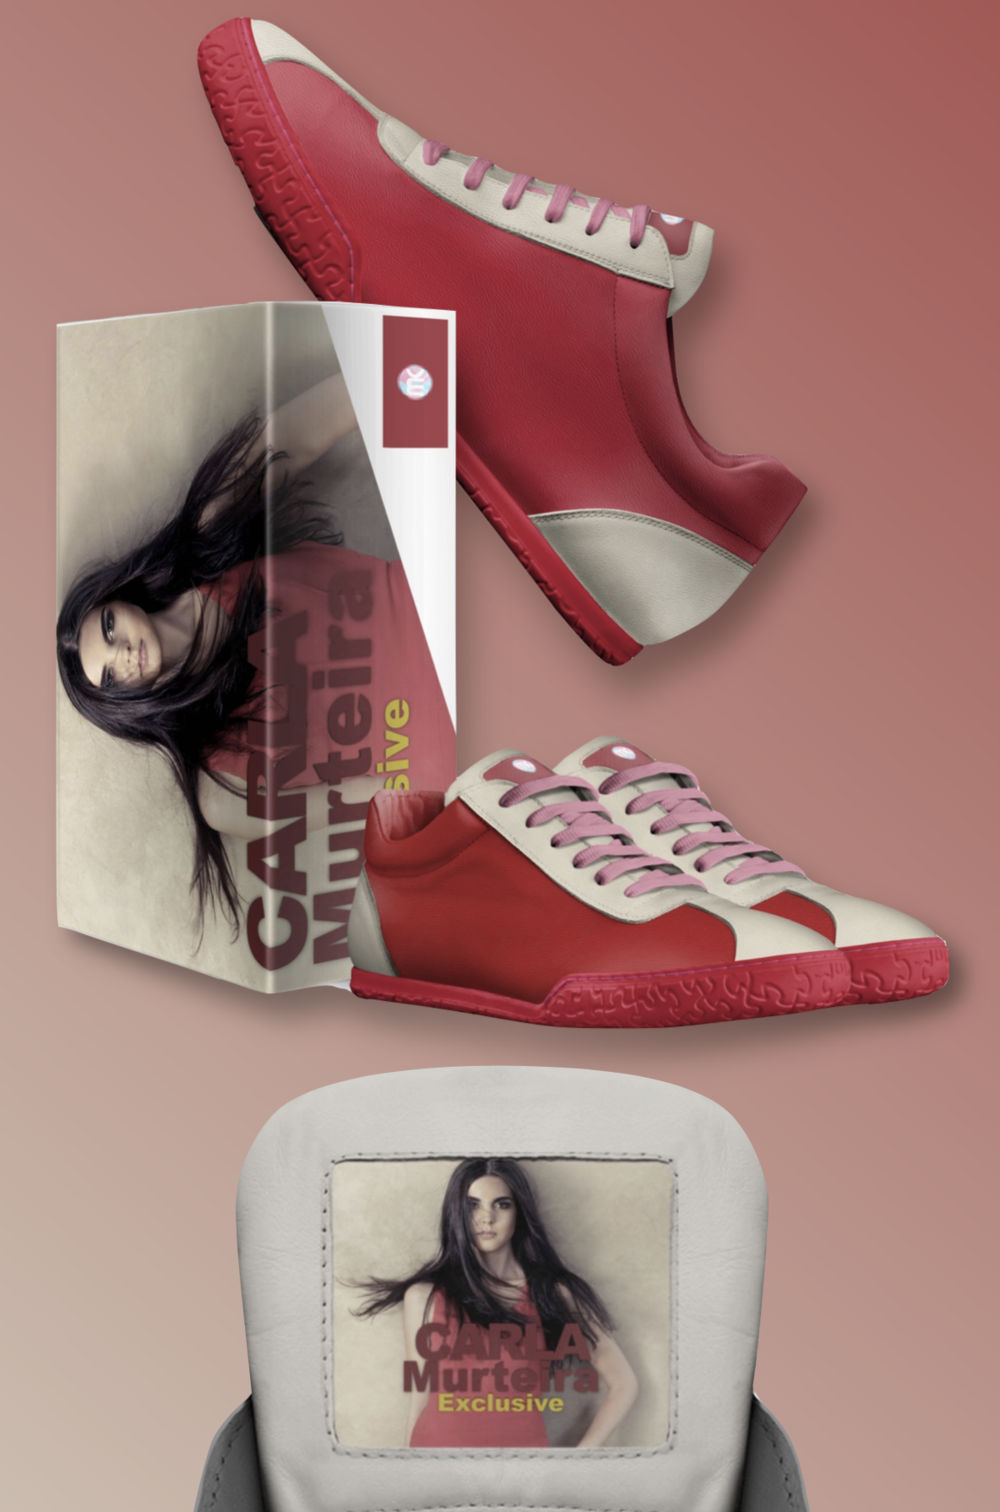 Model Citizen Magazine will launch its Merch on August 2018. We will focus on shoes which are going to be Italian made.  Every shoe is handcrafted by Italian mastercrafters and feature pristine Italian leather. Each pair is one-of-a-kind: a combination of handcrafting tradition, quality and modern style. Perfectly italian.  A minimal design for this street style low sneaker, that must be worn slightly unbuttoned to emphasize/thrill the logo placed on the tongue. The shoe is made of genuine Italian leather, natural cotton laces and classic padding on the back.  Enjoy a completely custom and top-quality collector's edition packaging for your shoes Amazing print quality, handmade in Italy and featuring a solid magnetic clip. A design piece of great value itself.  The shoes above is a mockup and will be ready when we launch in August.  To receive updates or to get invited for this collaboration, please fill out the form below.